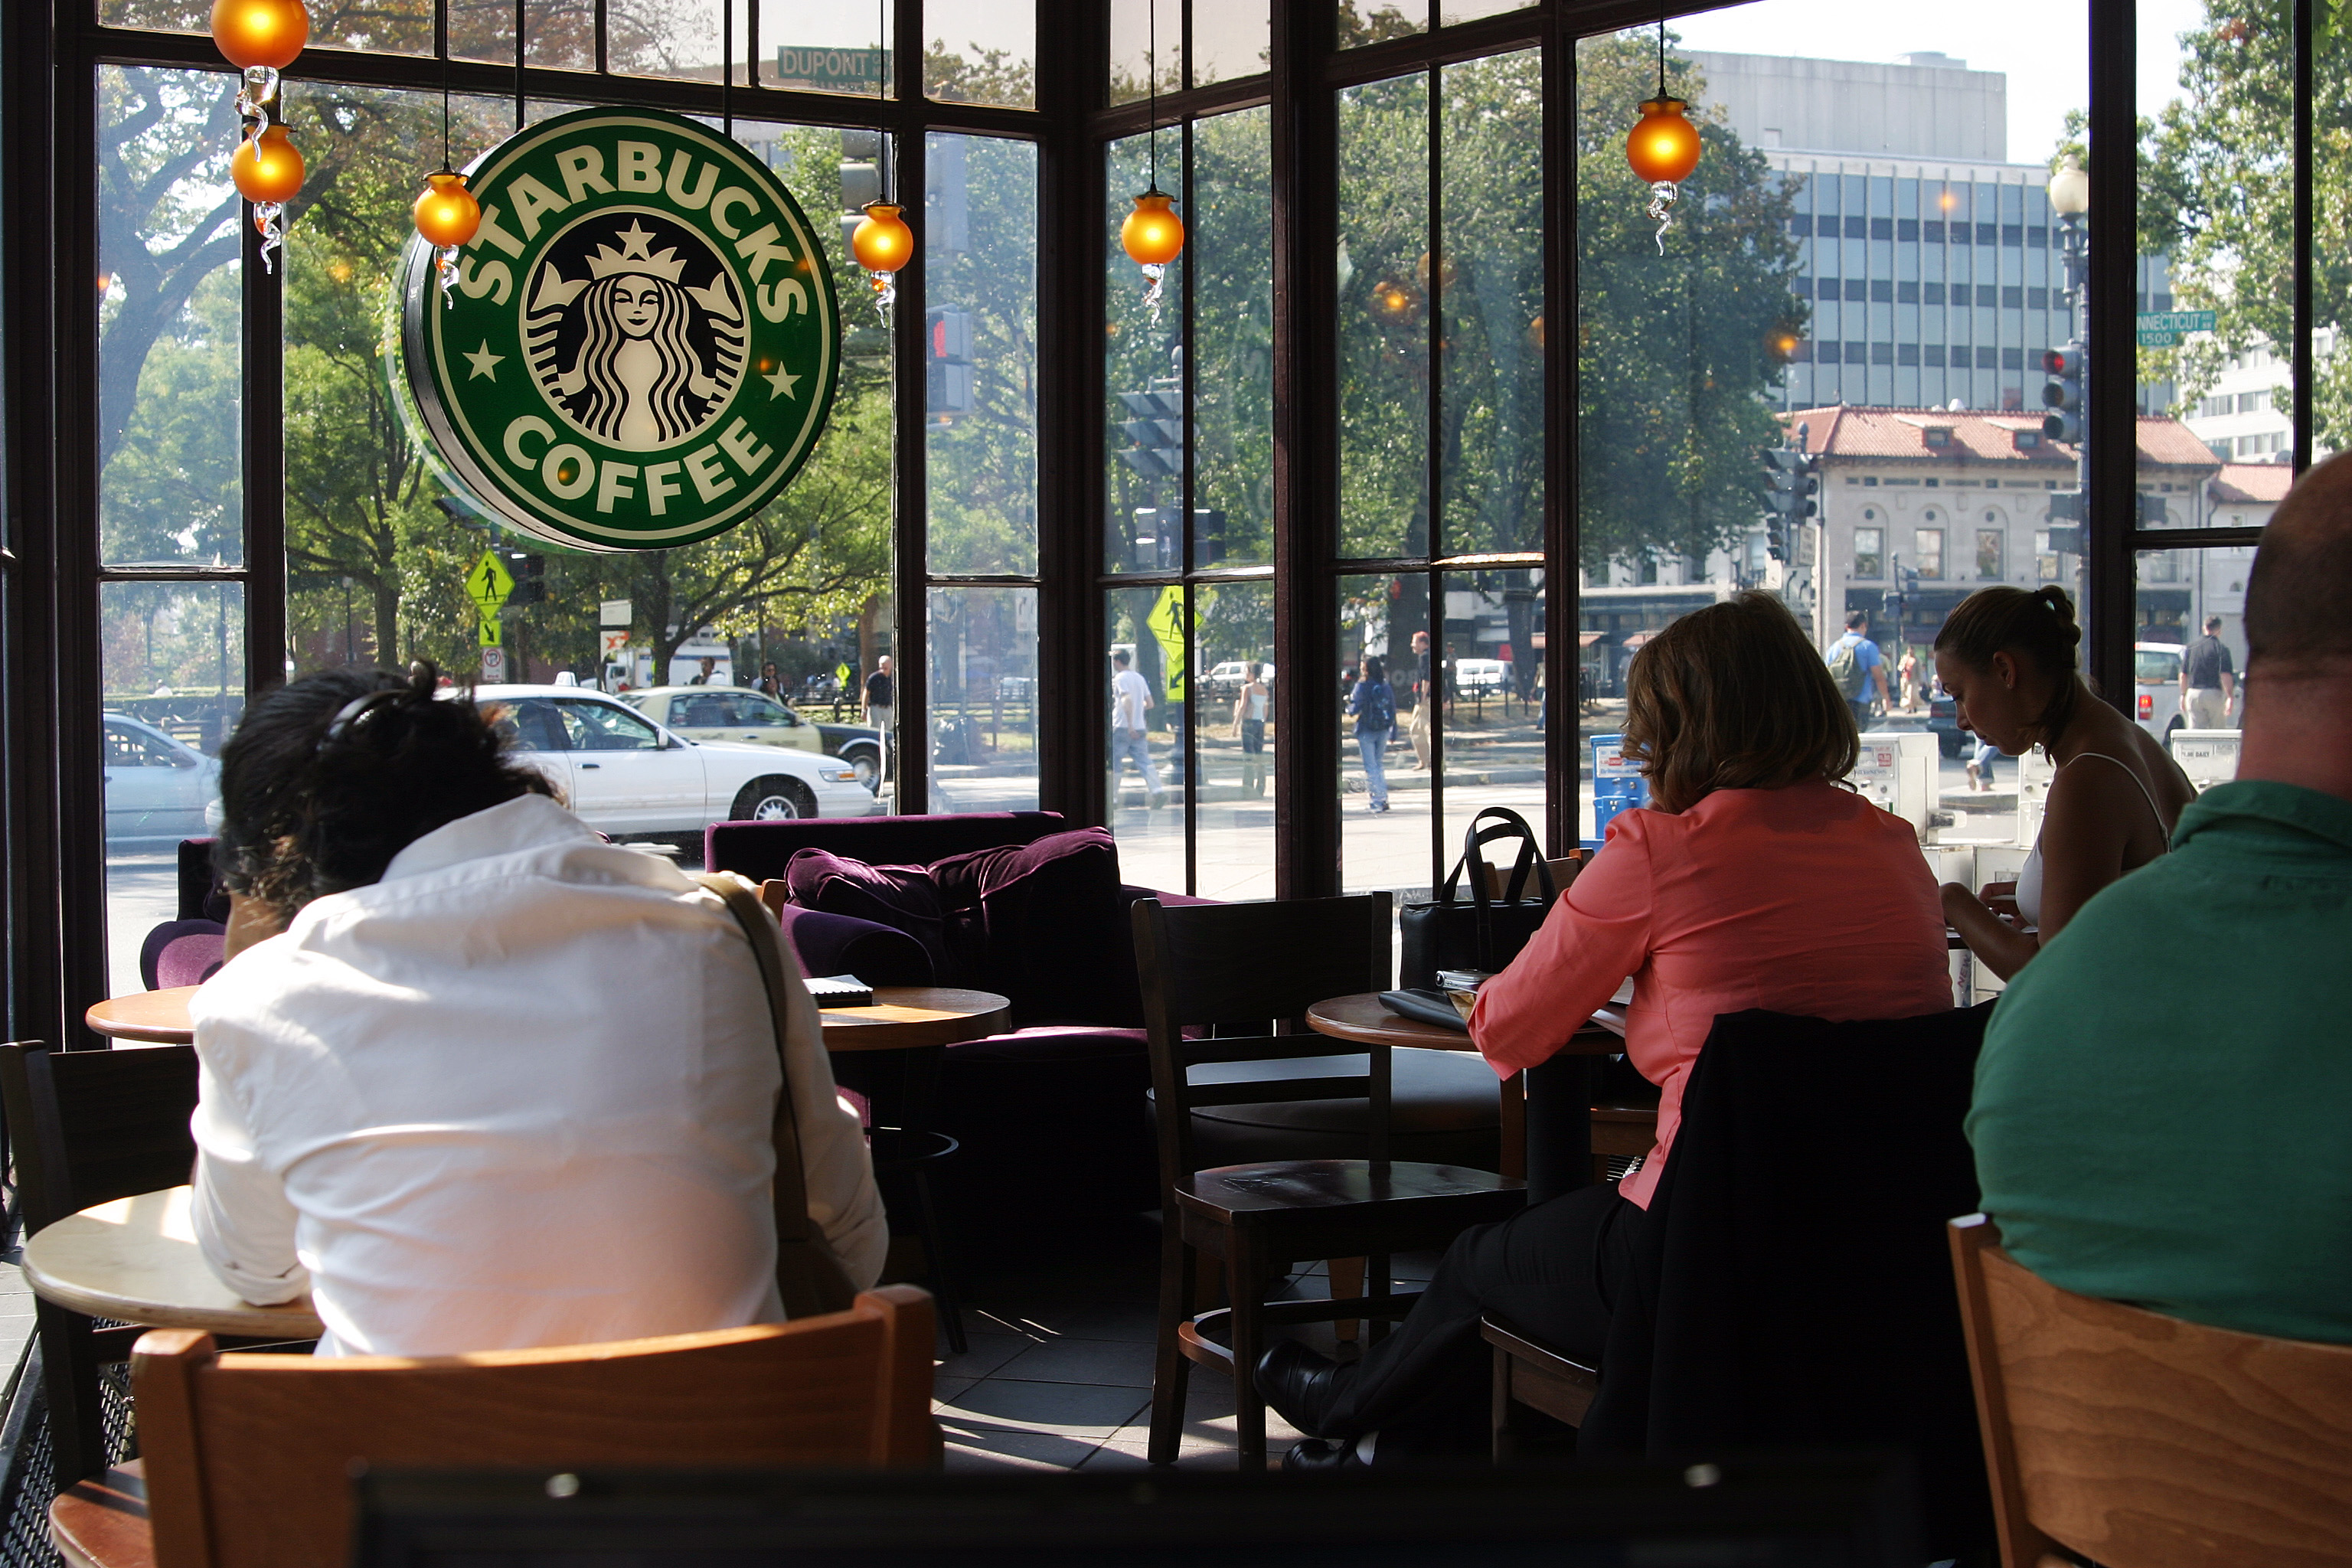 People drinking coffee inside a Starbucks midday